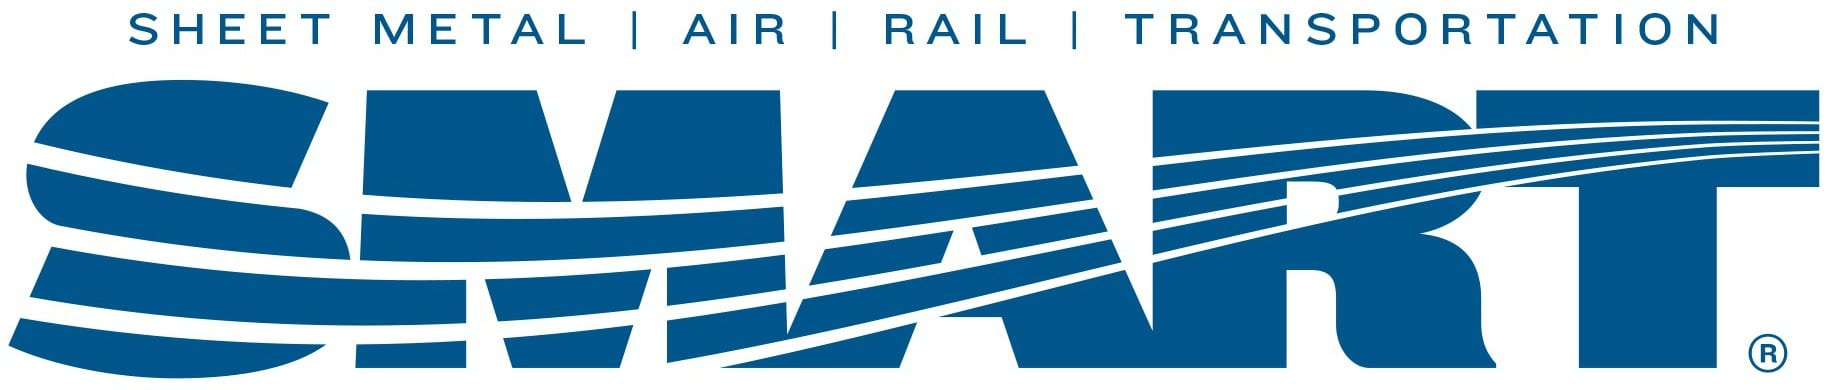 Sheet Metal Air, Rail and Transportation (SMART)